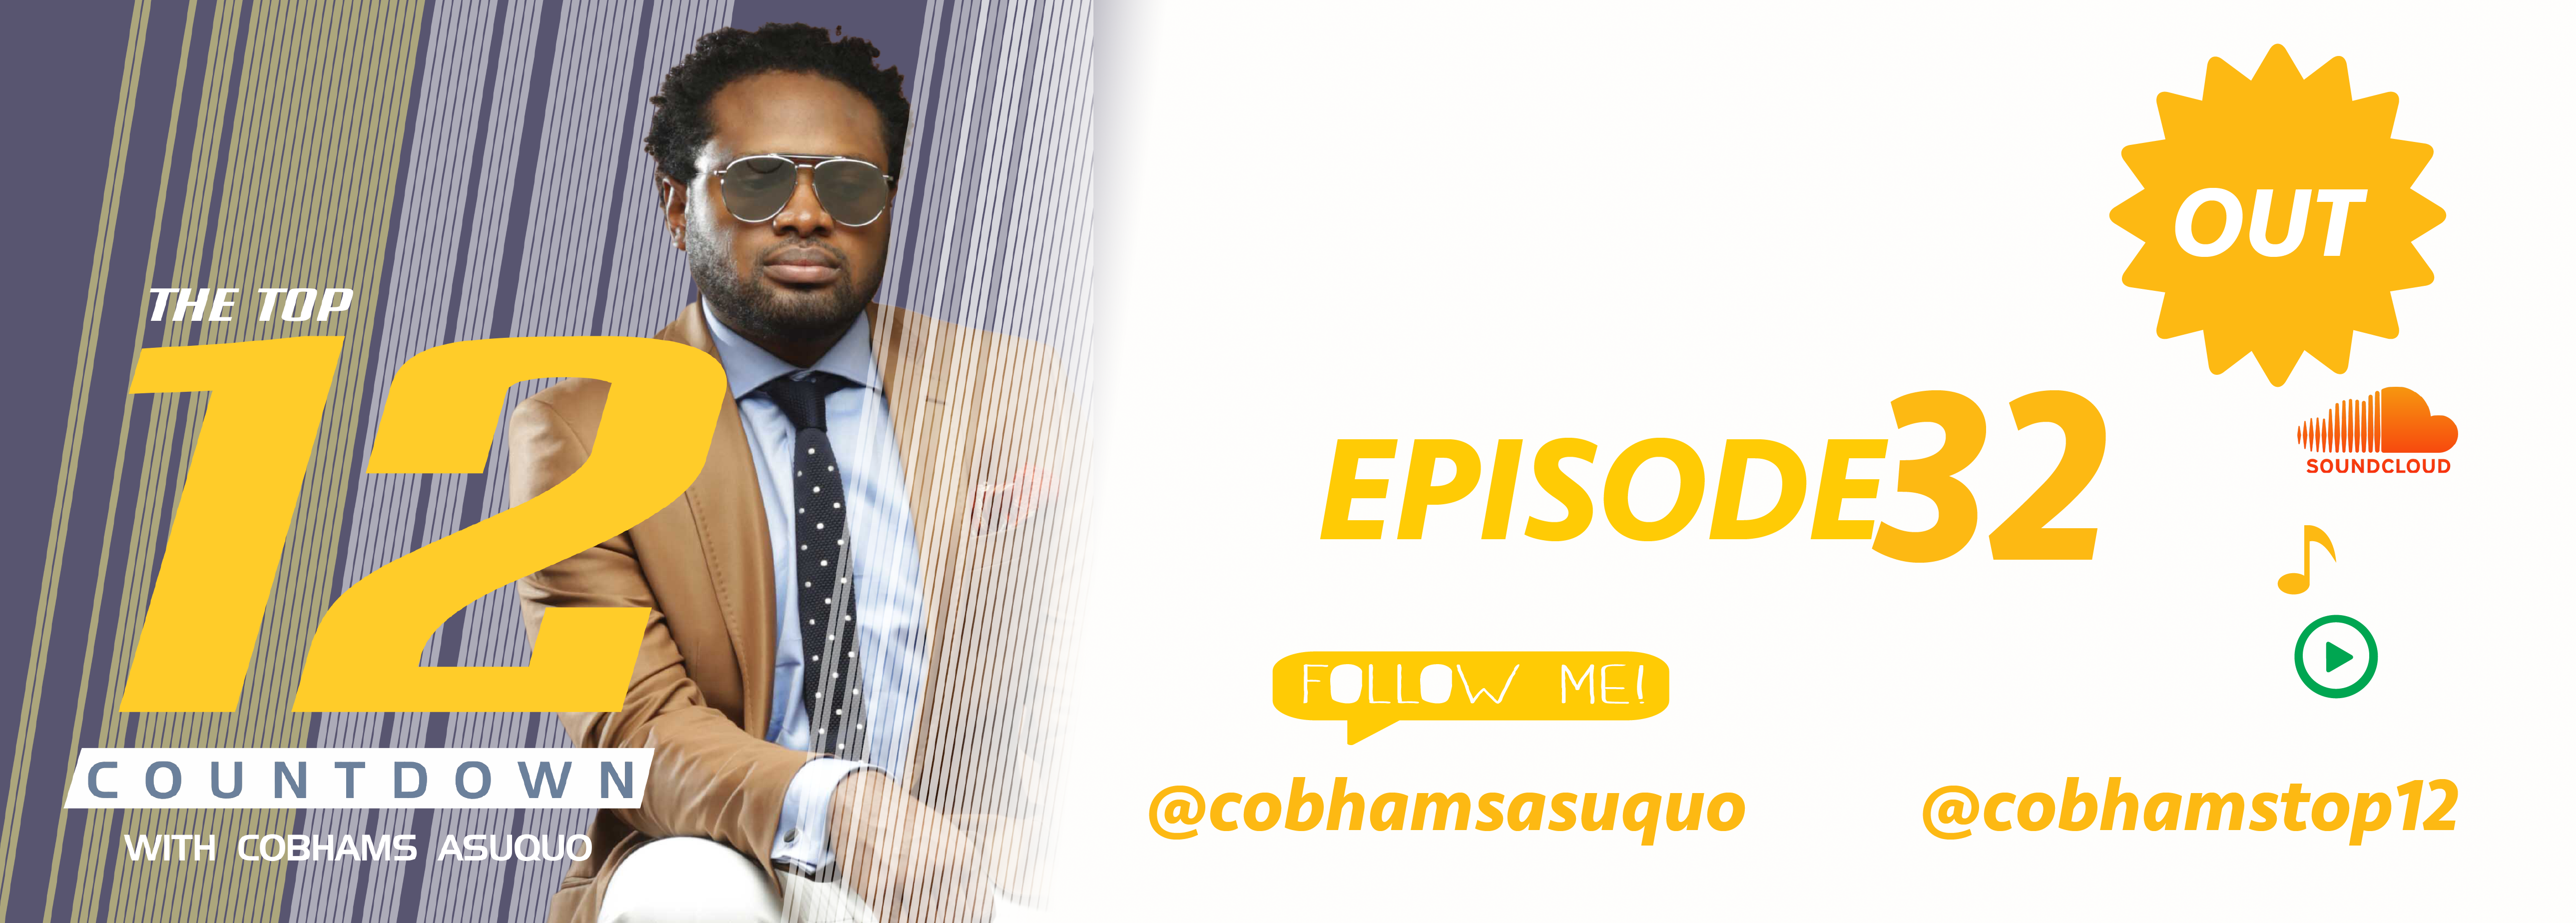 The Top 12 Countdown With Cobhams Asuquo – Ep 32